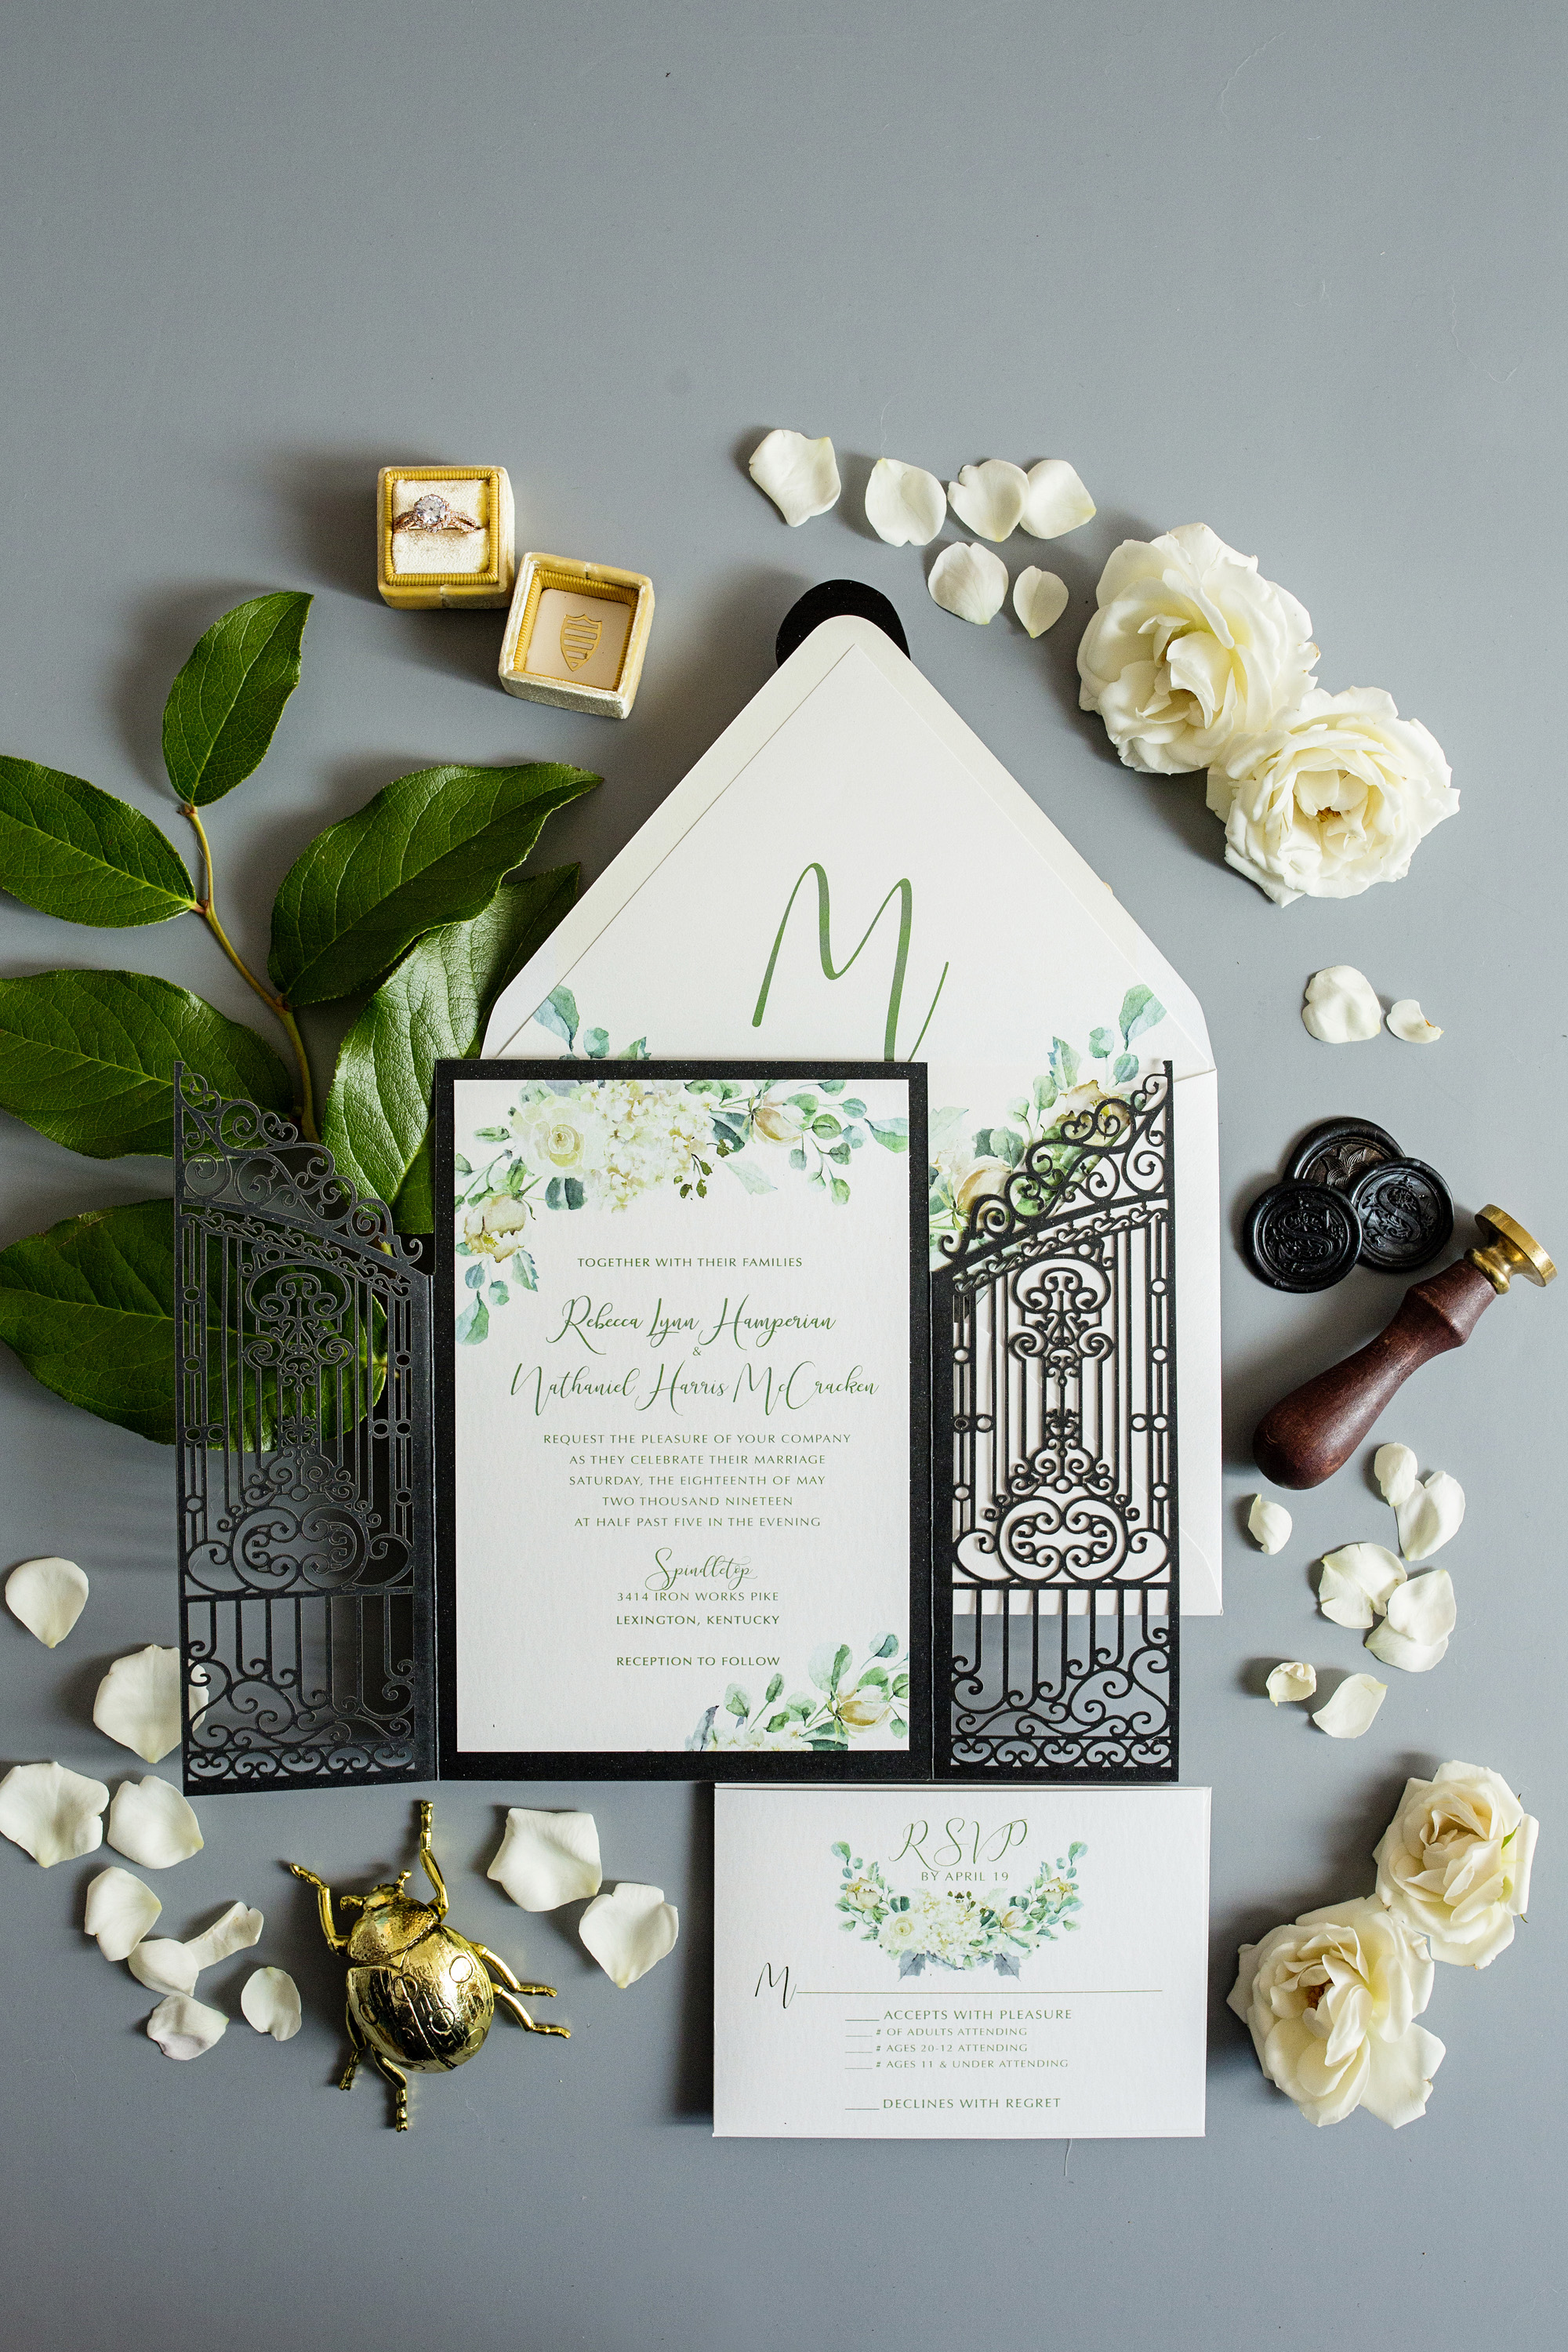 Seriously_Sabrina_Photography_Commercial_Simply_Done_Invites_2019_March_050